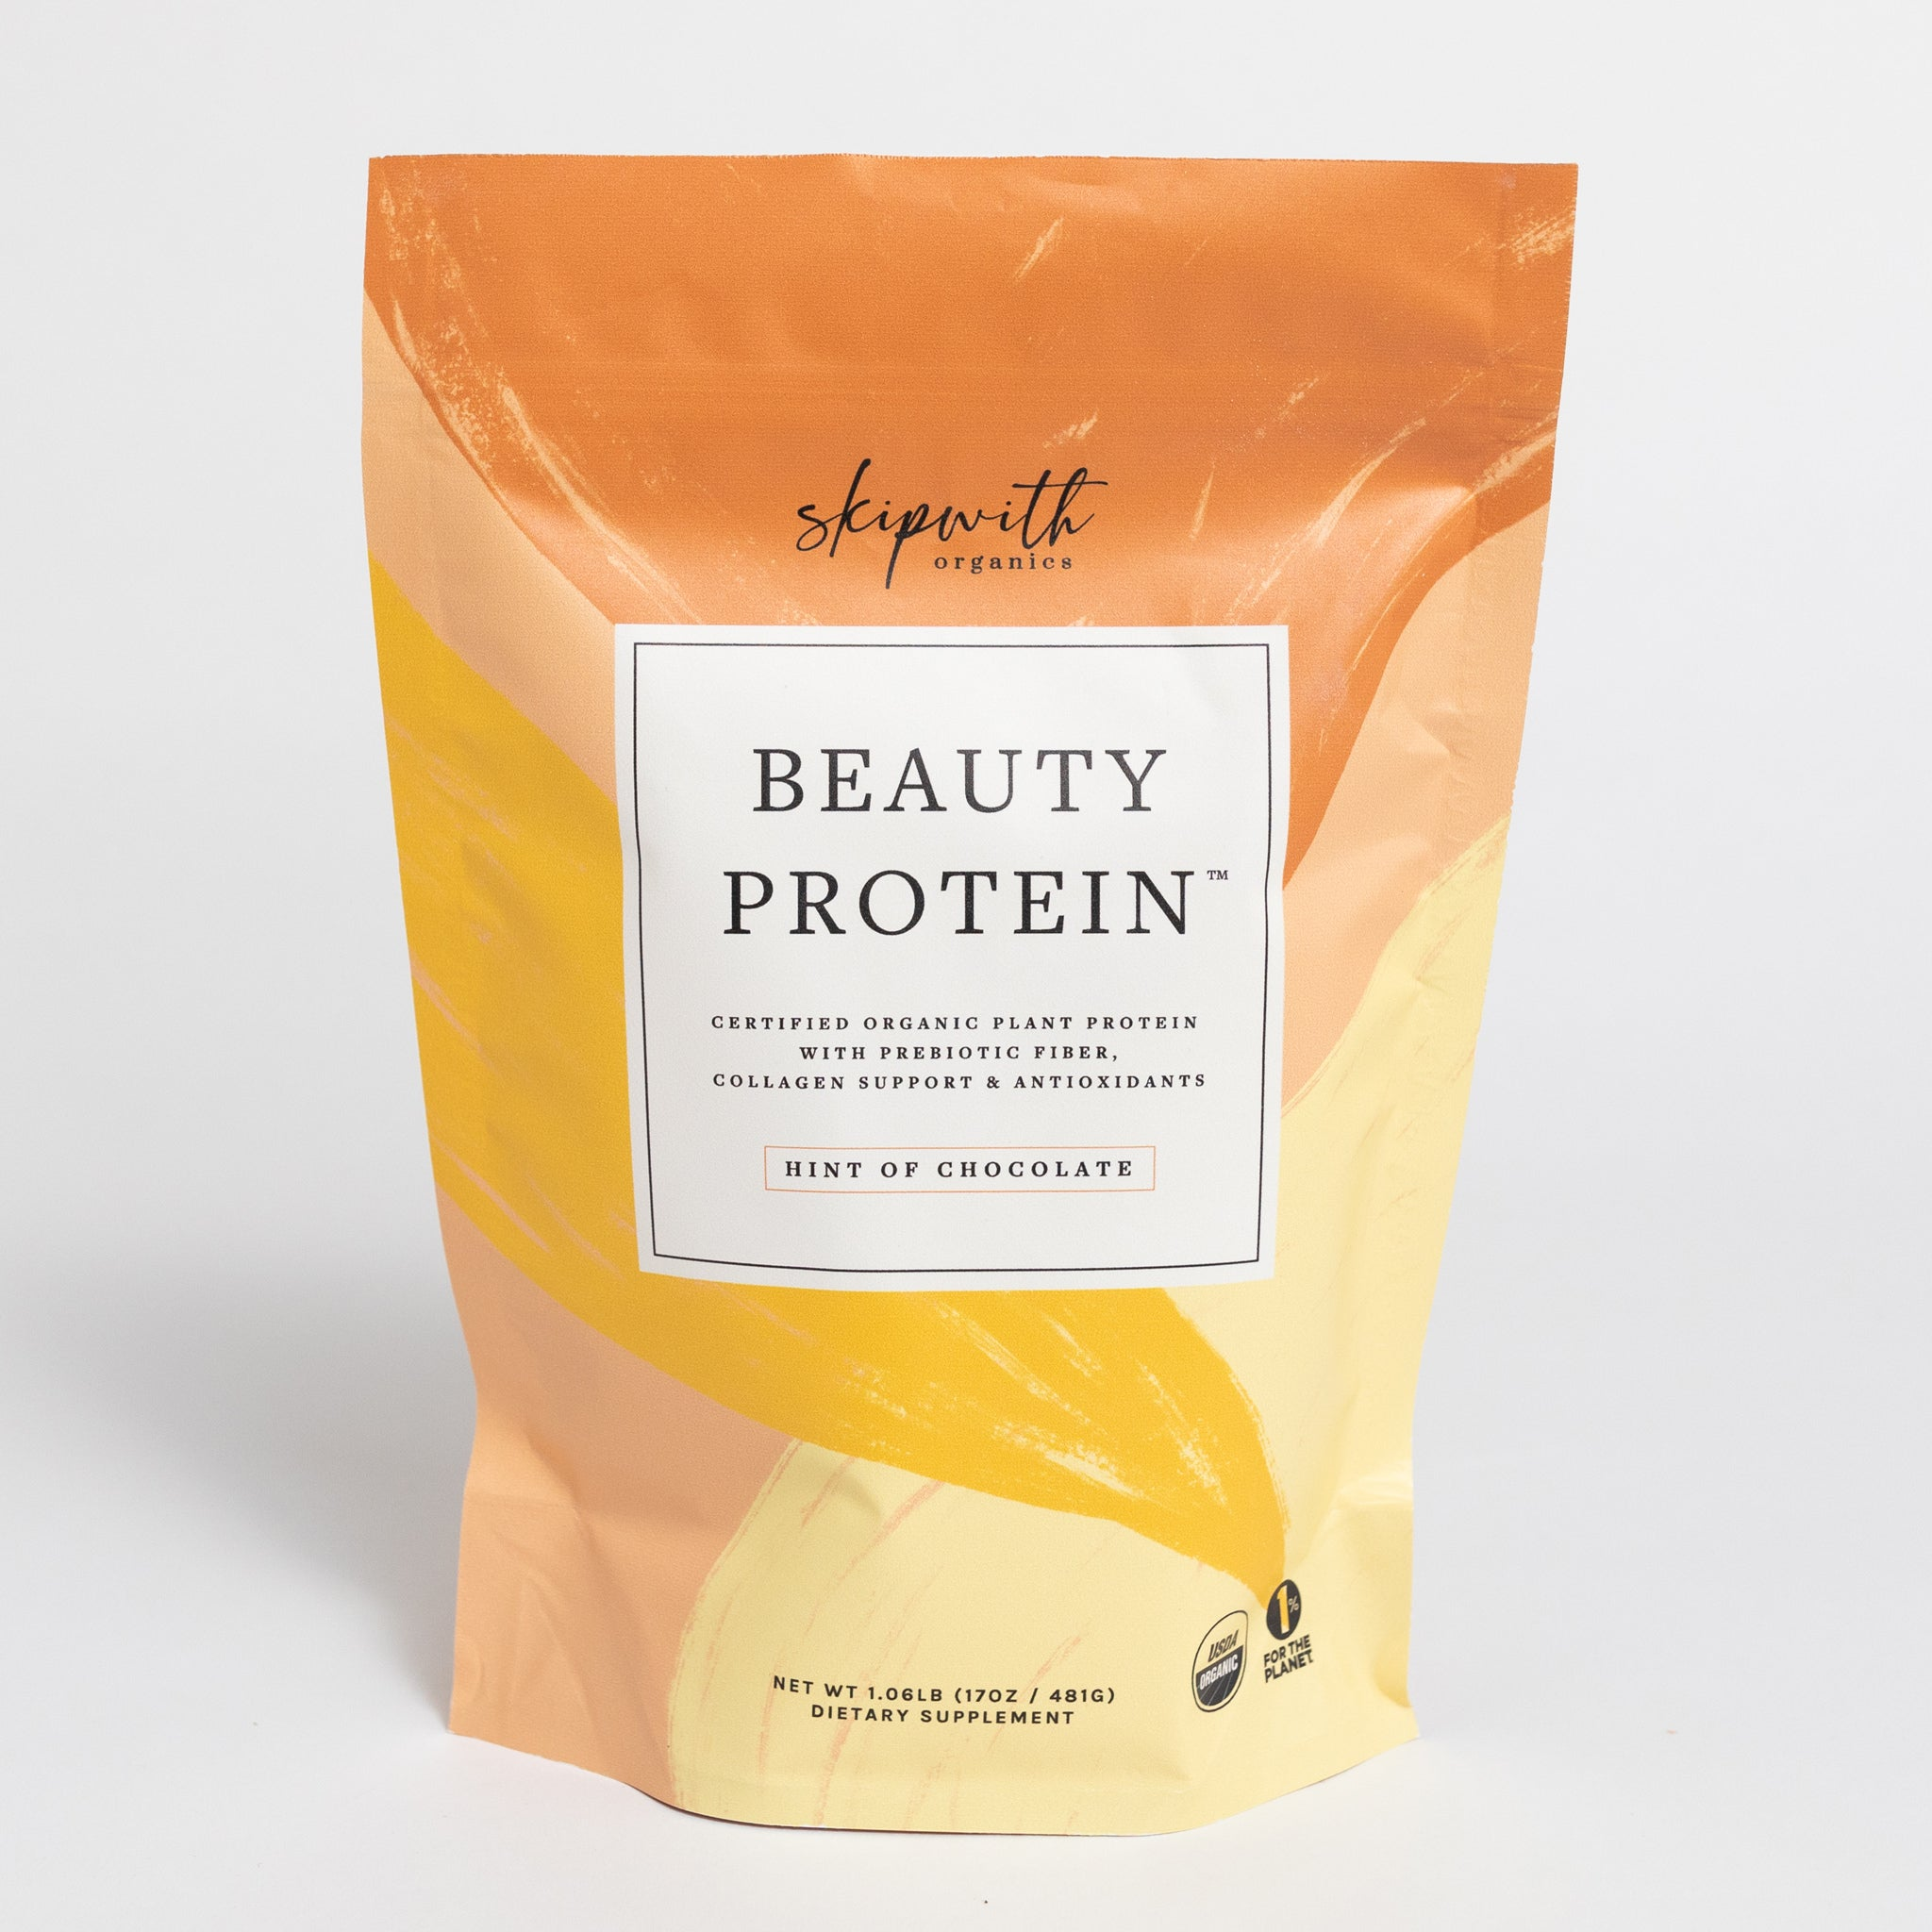 Hint of Chocolate subscribe and save Beauty protein